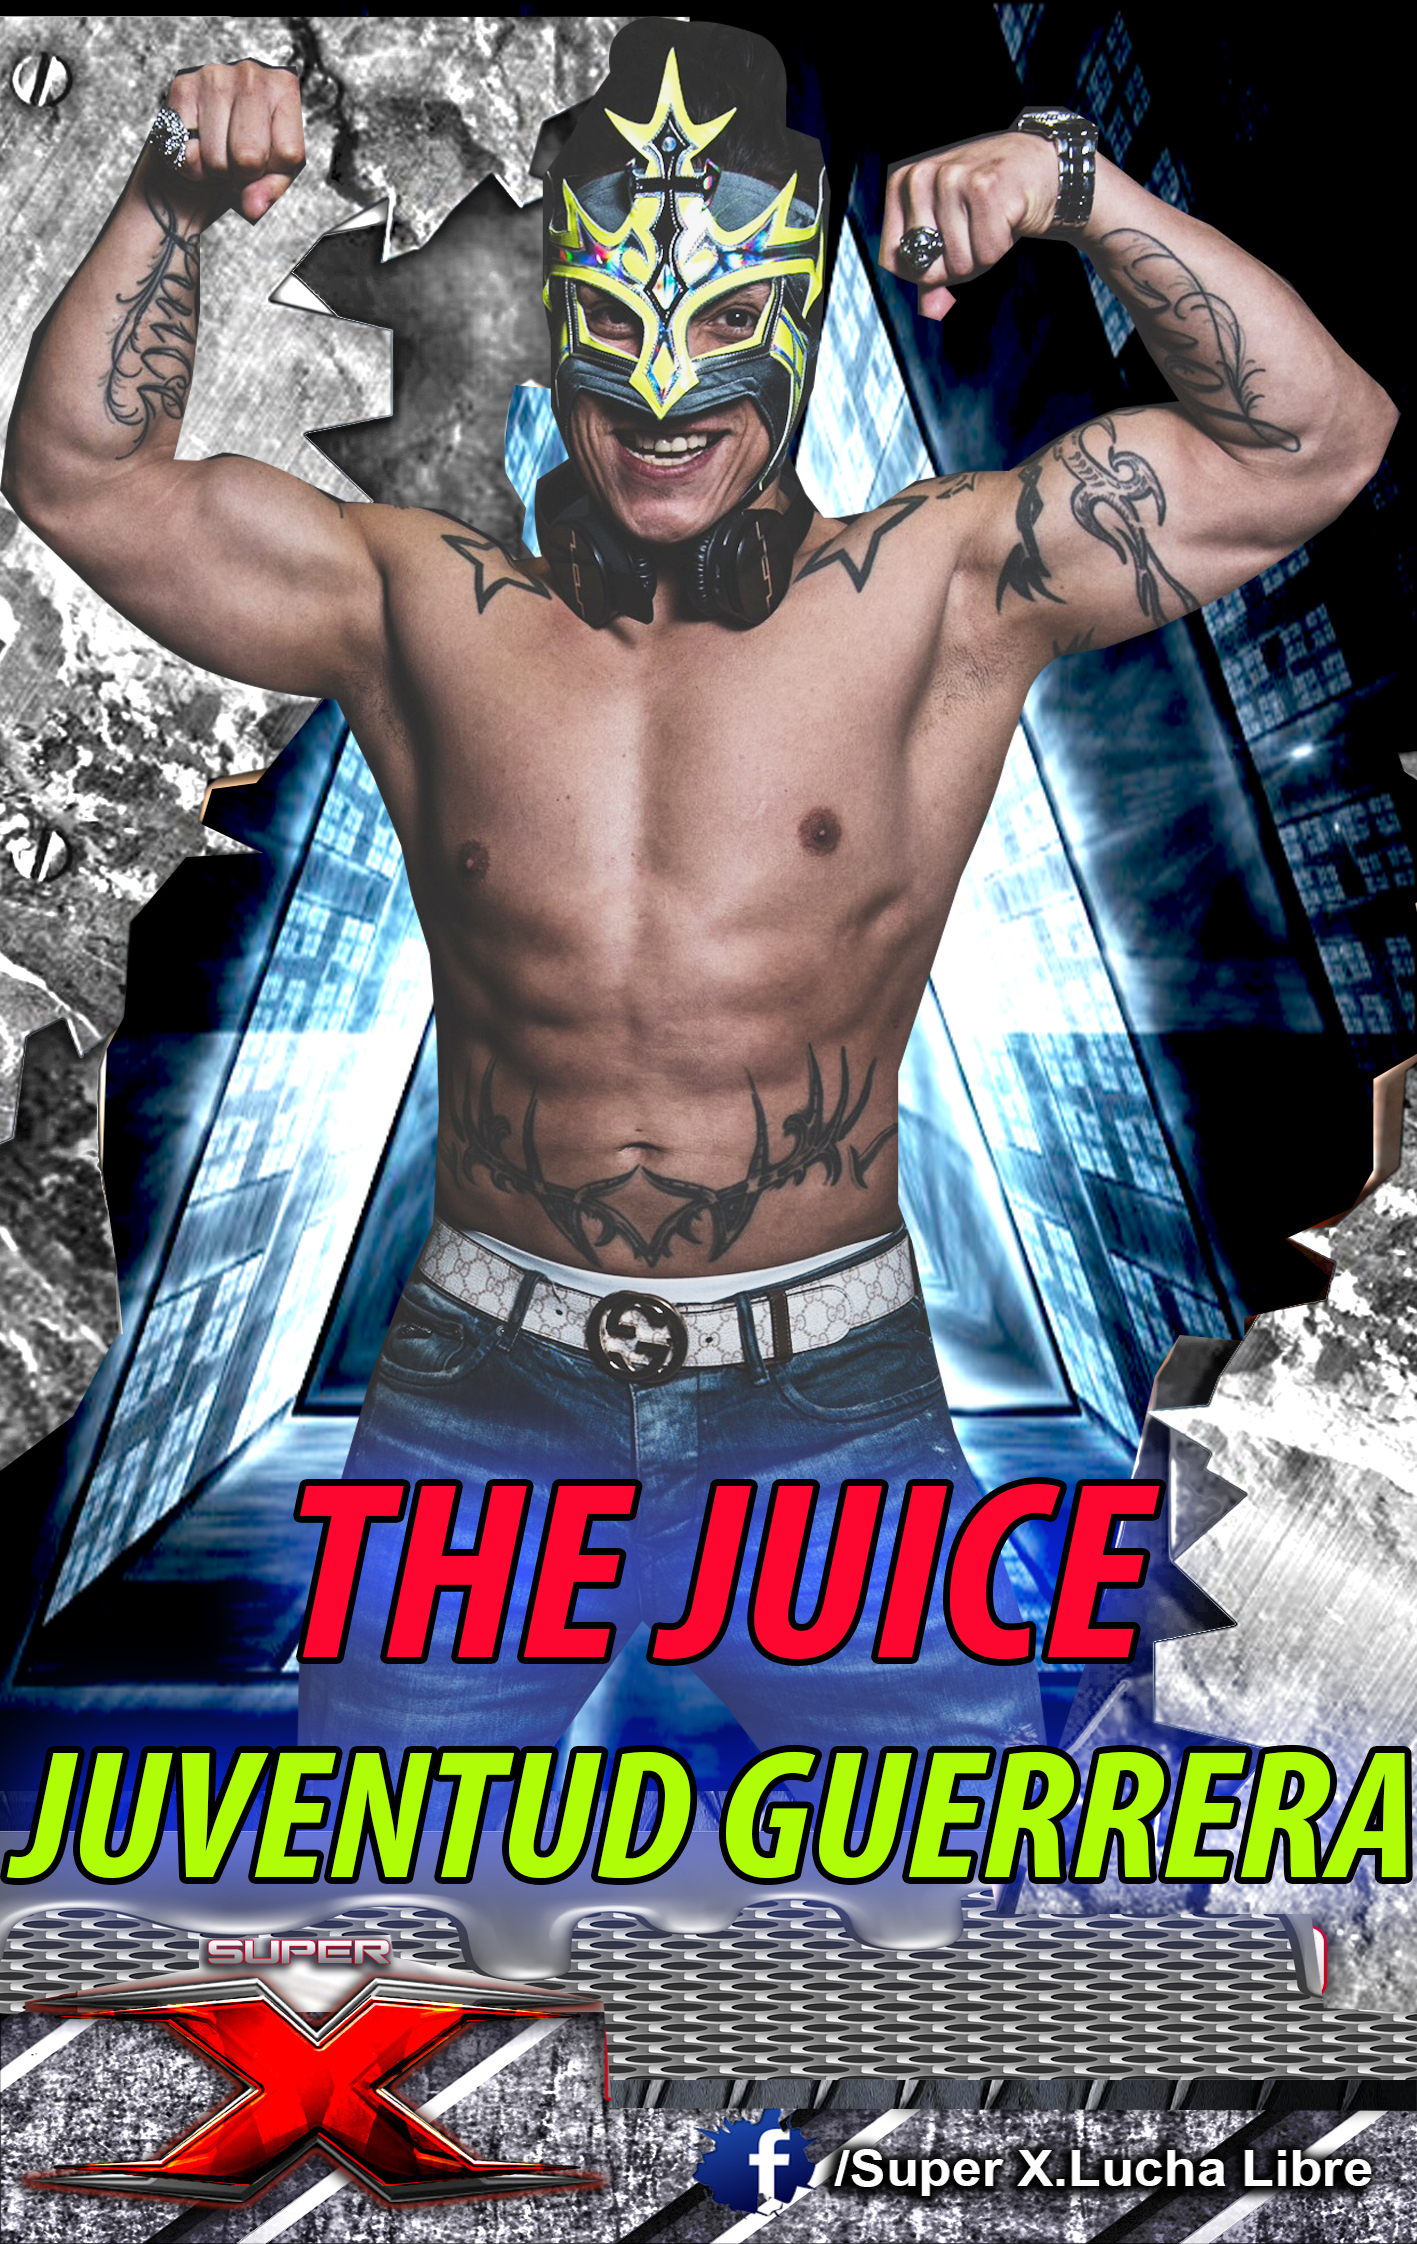 THE-JUICE-SUPER-X